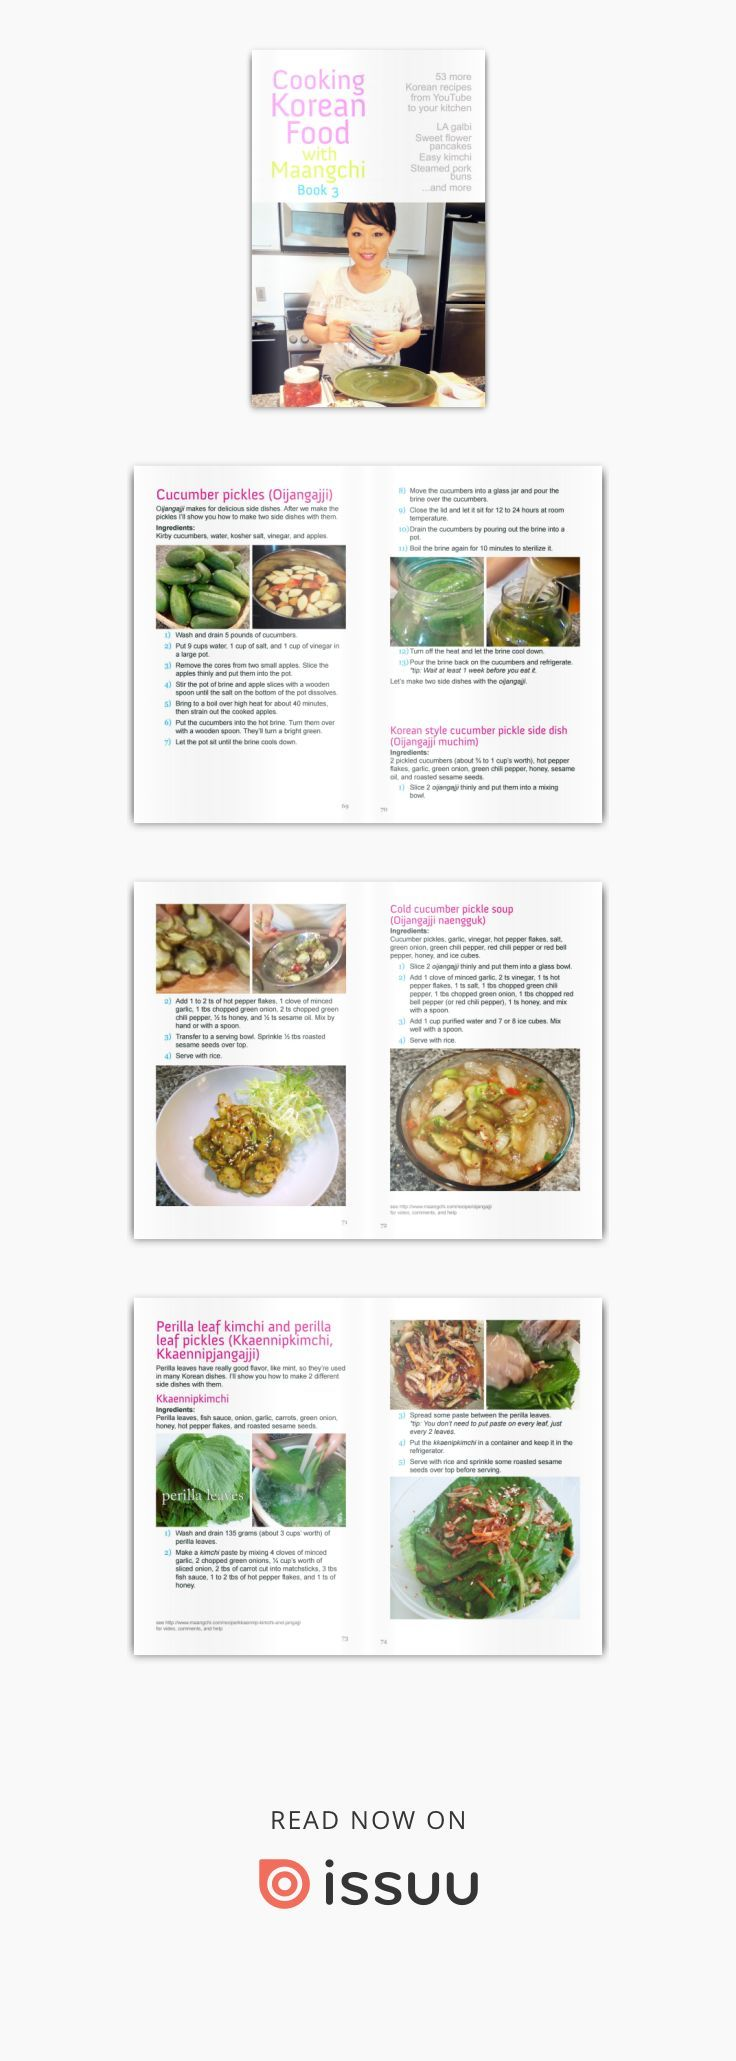 Cooking korean food with maangchi book 3 revised korean and food cooking korean food with maangchi book 3 revised forumfinder Image collections